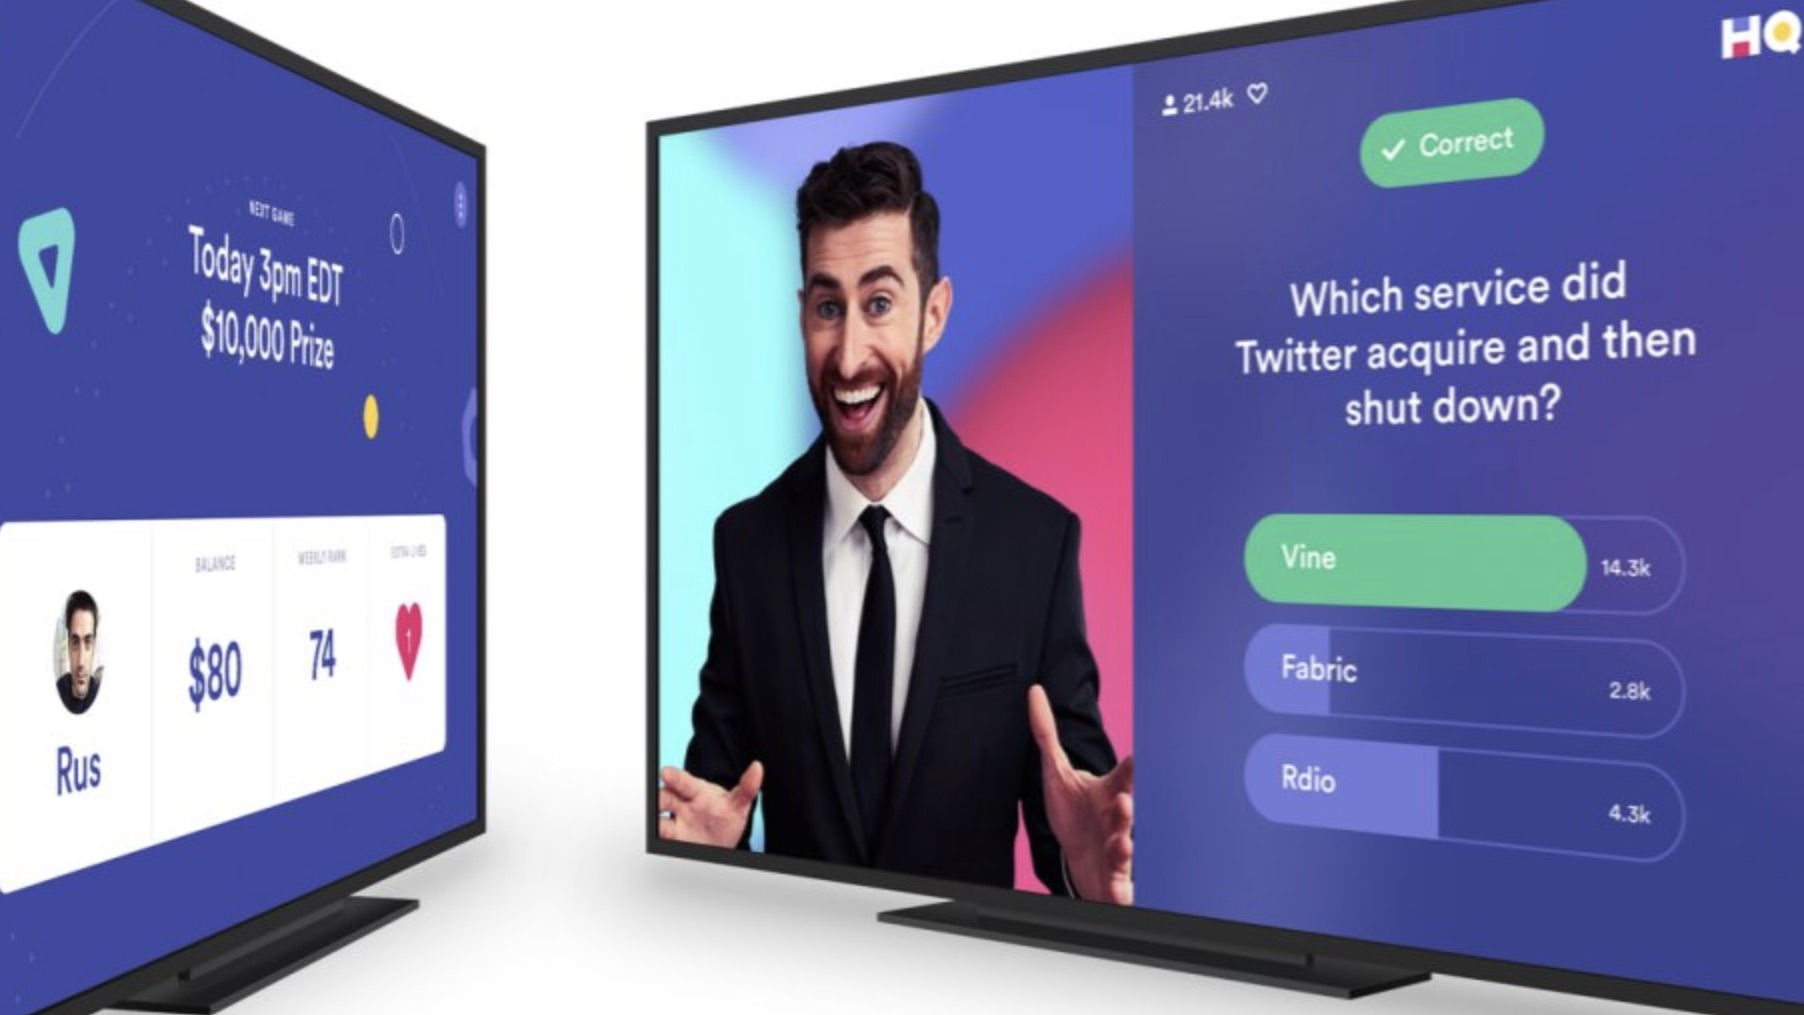 Live Hq Hq Trivia Brings Live Trivia Game Show With Cash Prizes To The